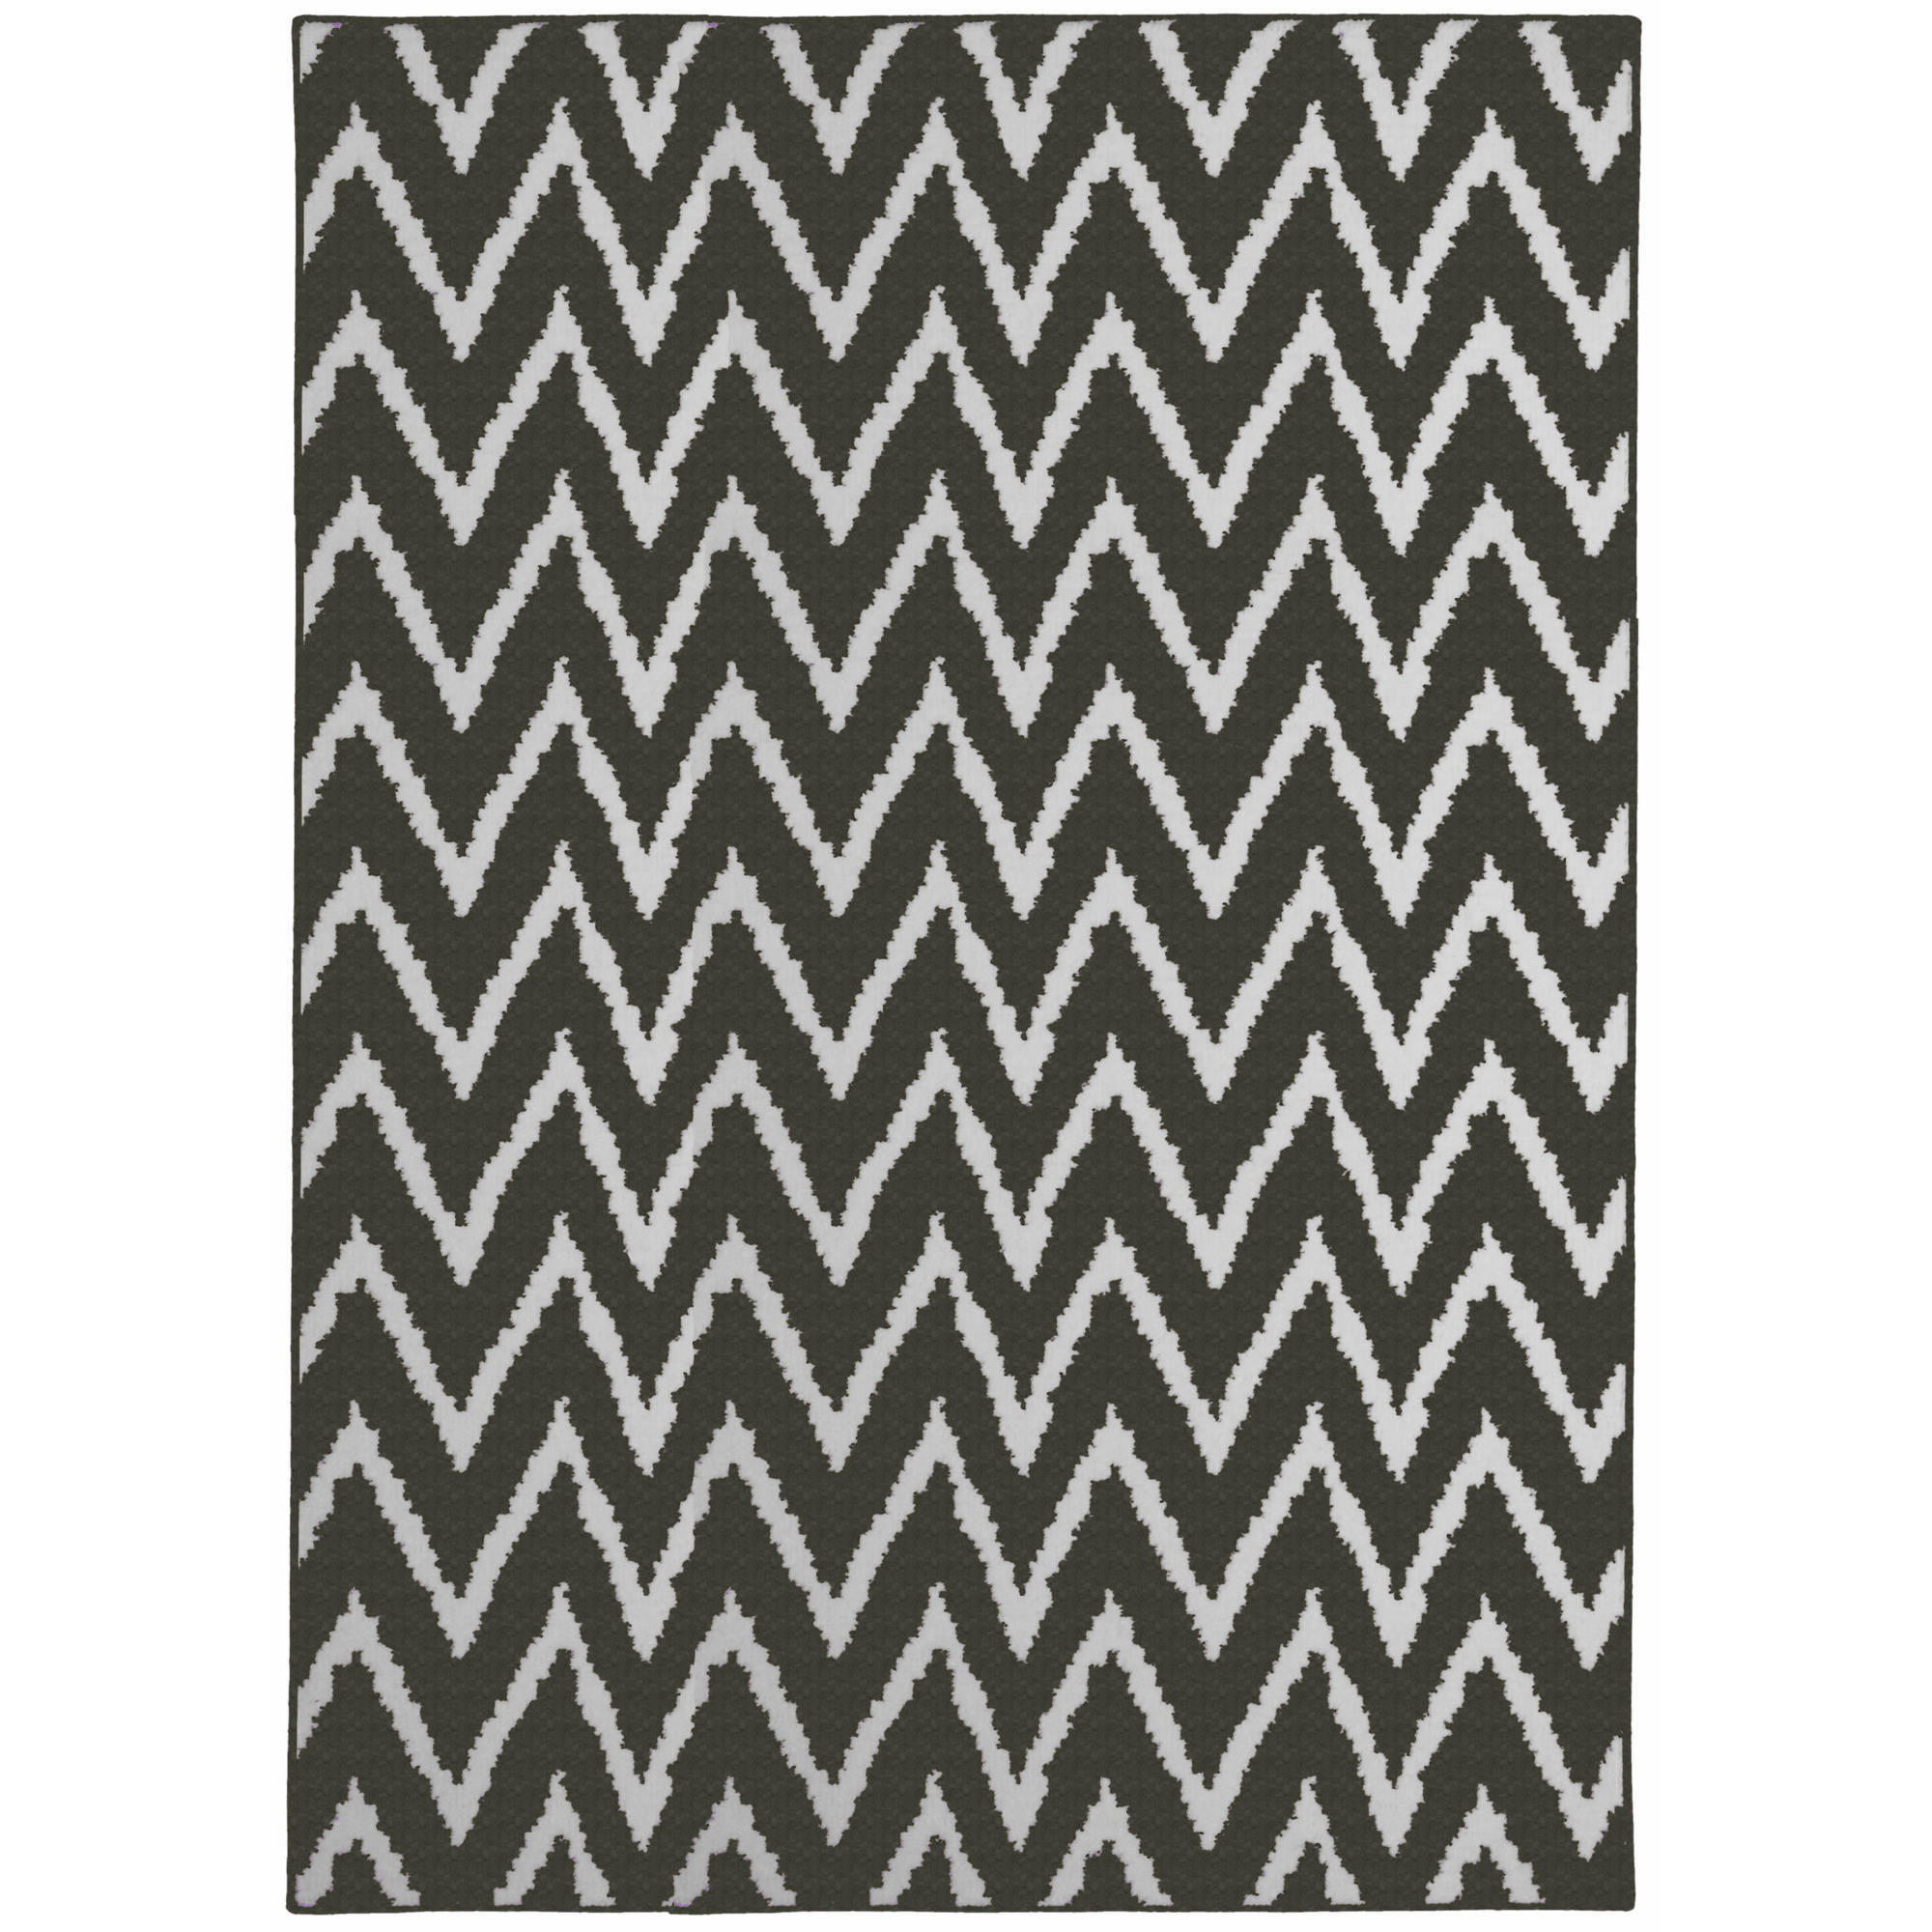 Mainstays Distressed Zig Zag Area Rug Image 2 Of 2